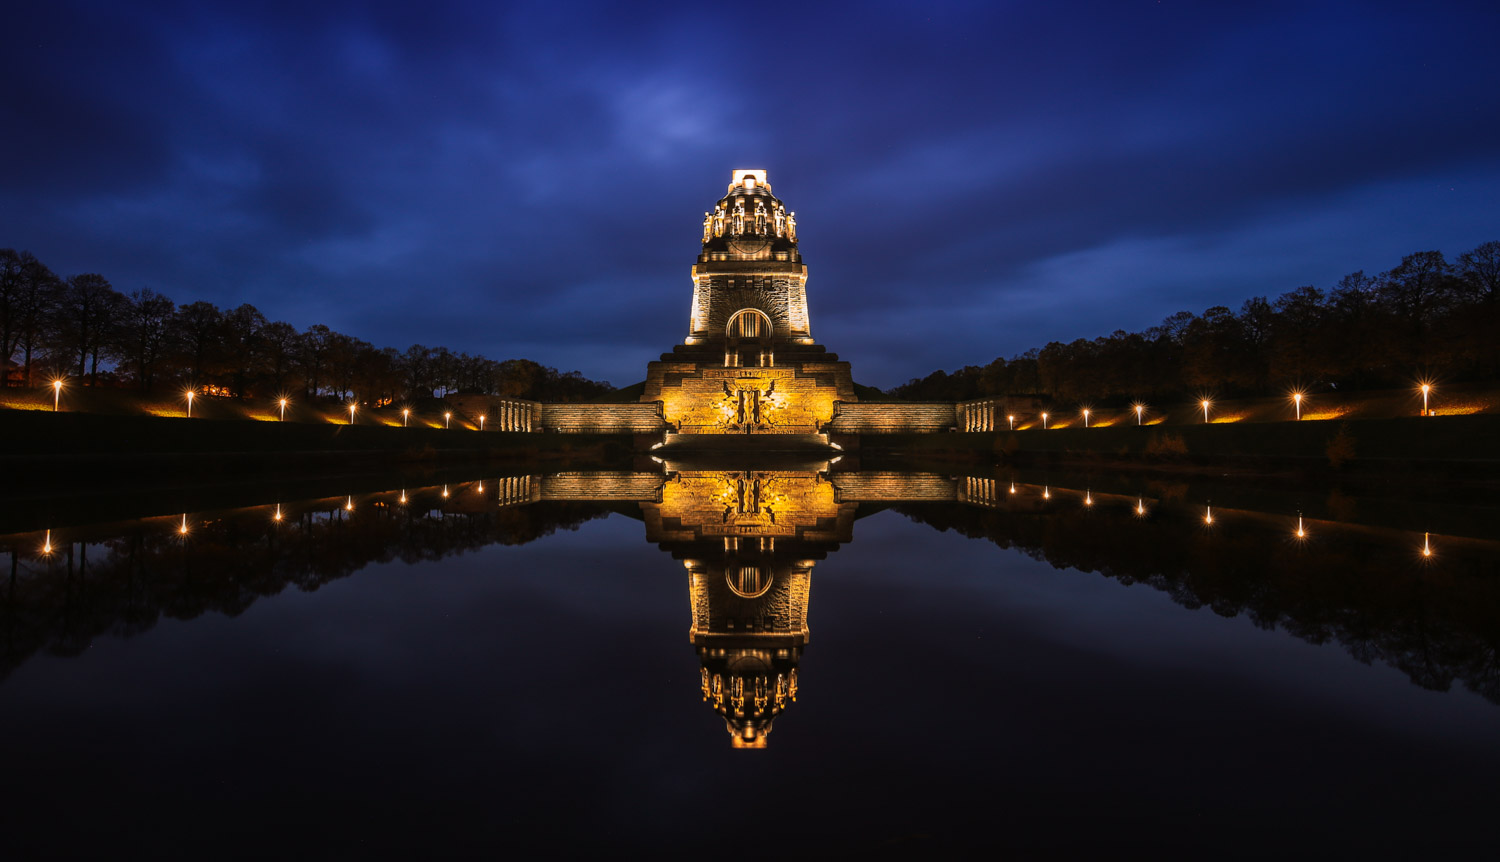 Monument of the Battle of the Nations in Leipzig.